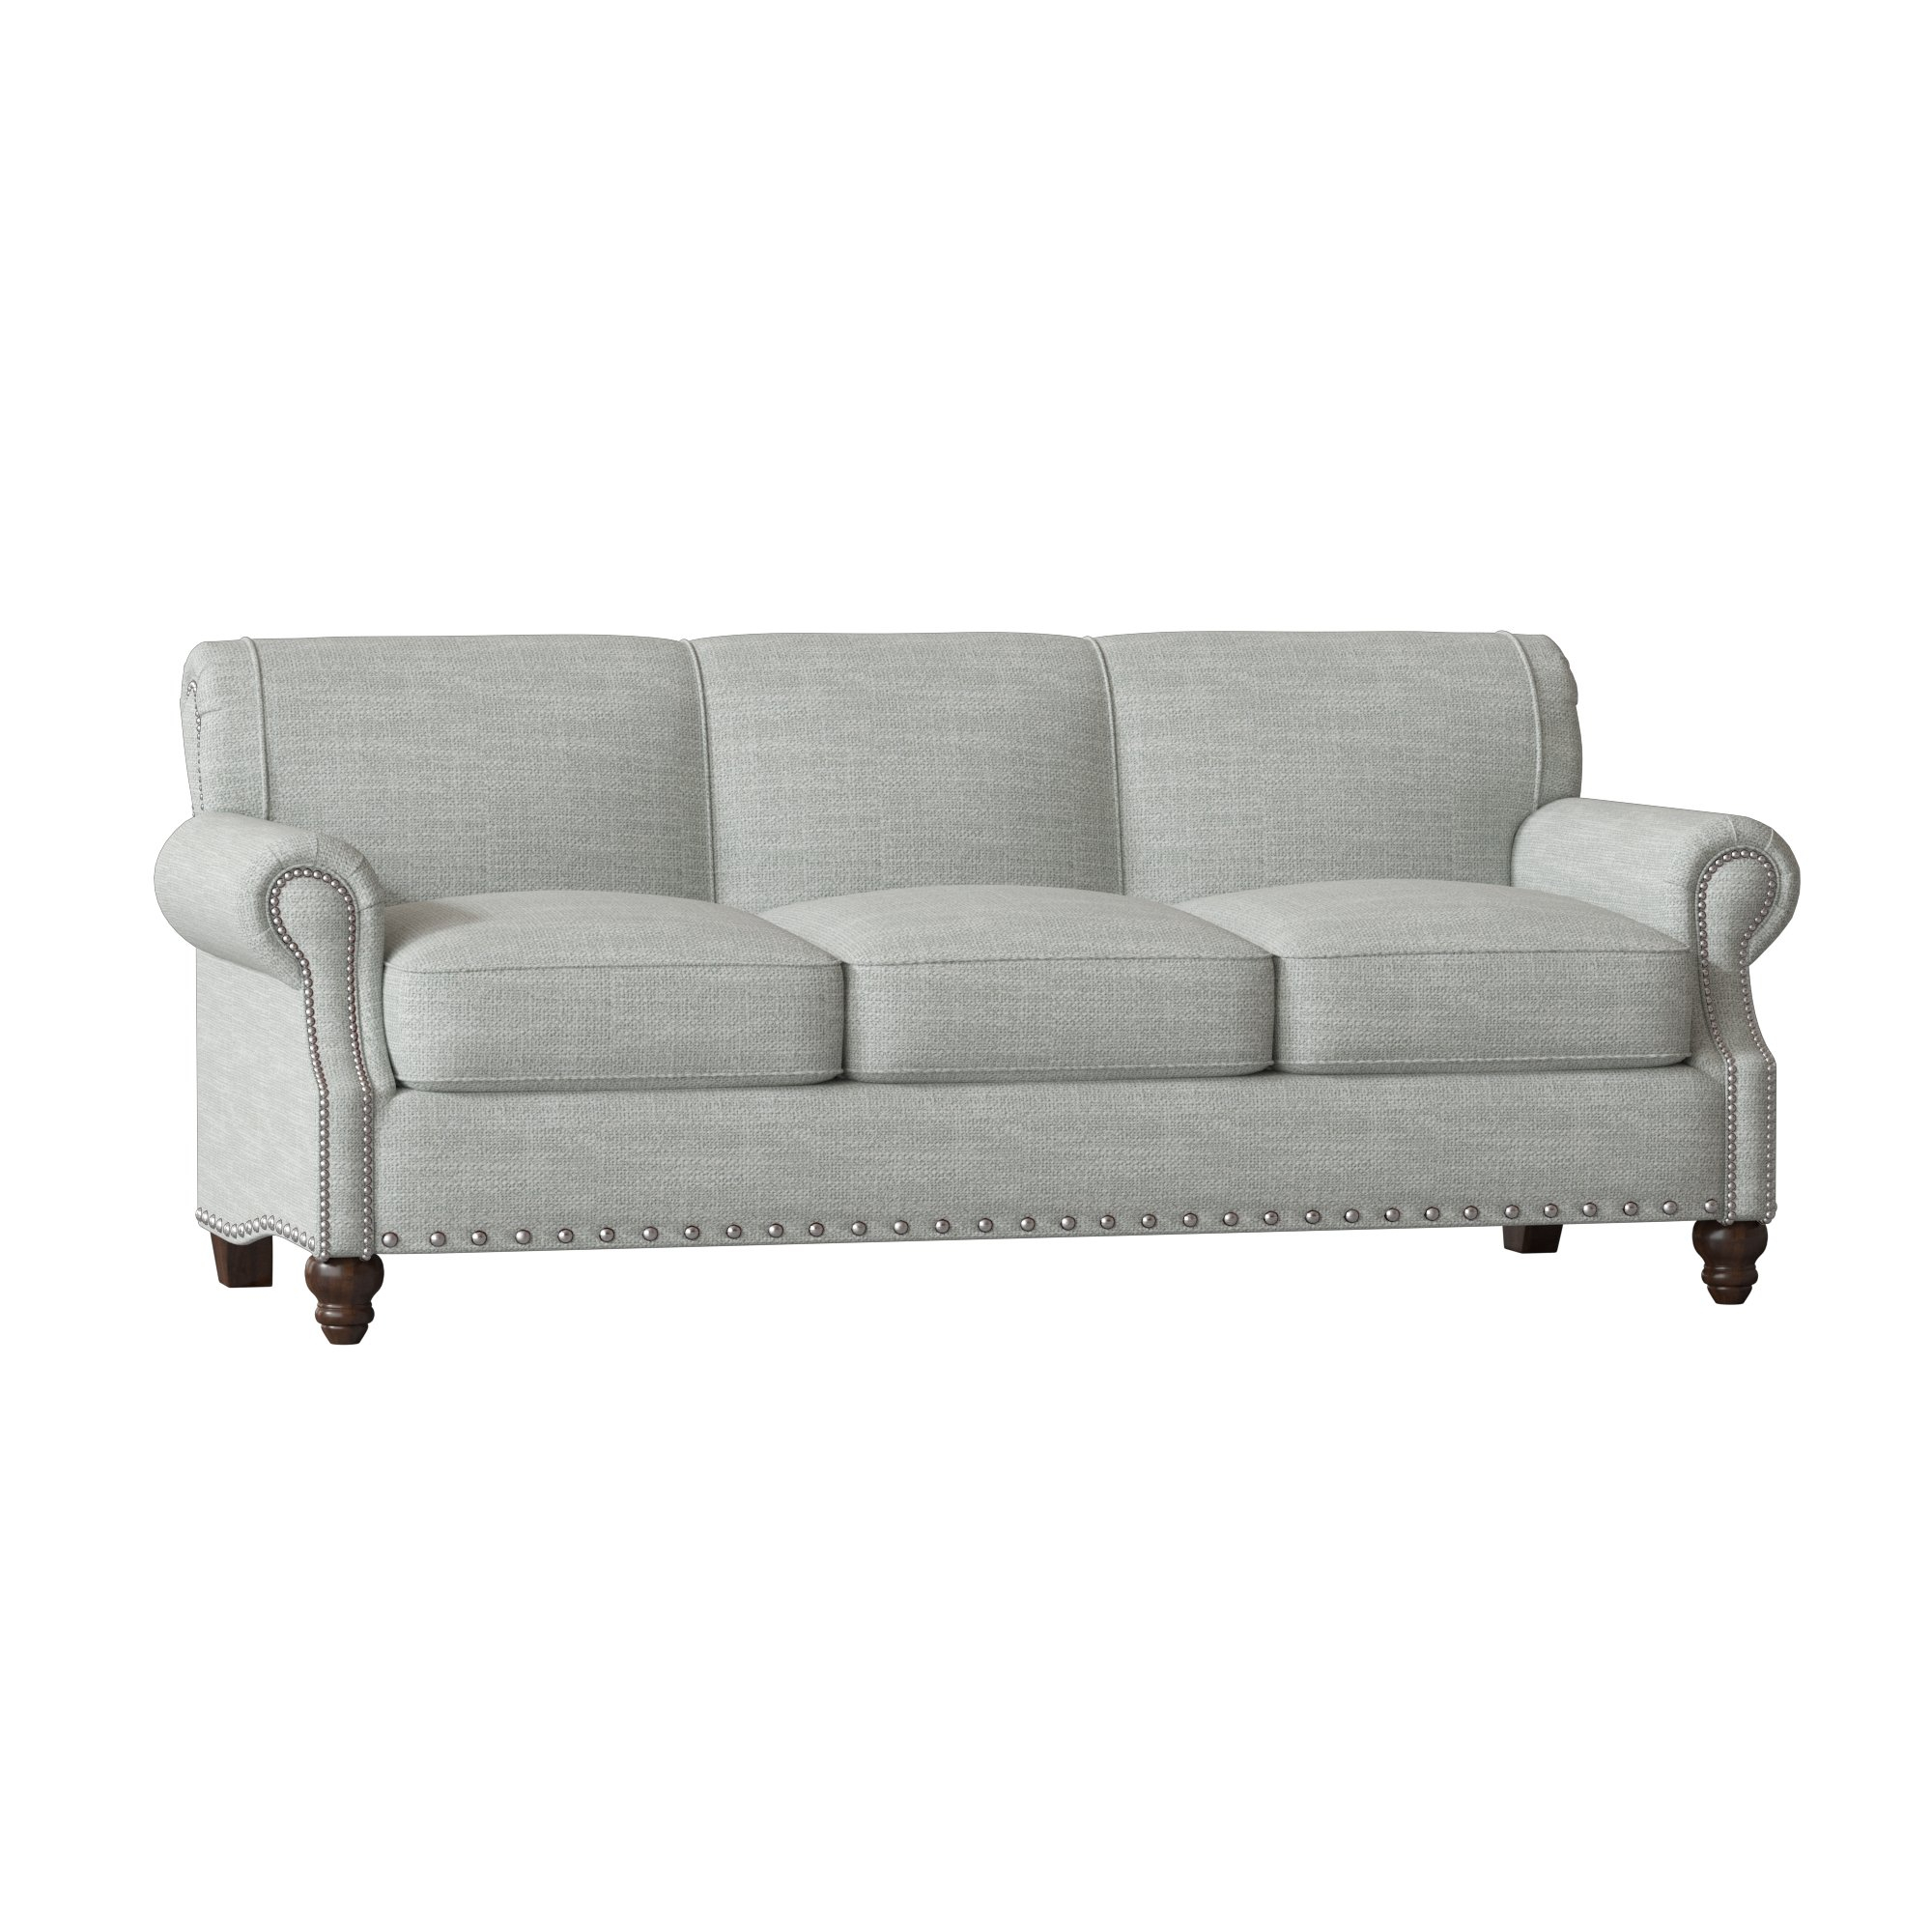 Birch Lane™ Heritage Landry Sofa & Reviews | Birch Lane Regarding Landry Sofa Chairs (Image 7 of 20)